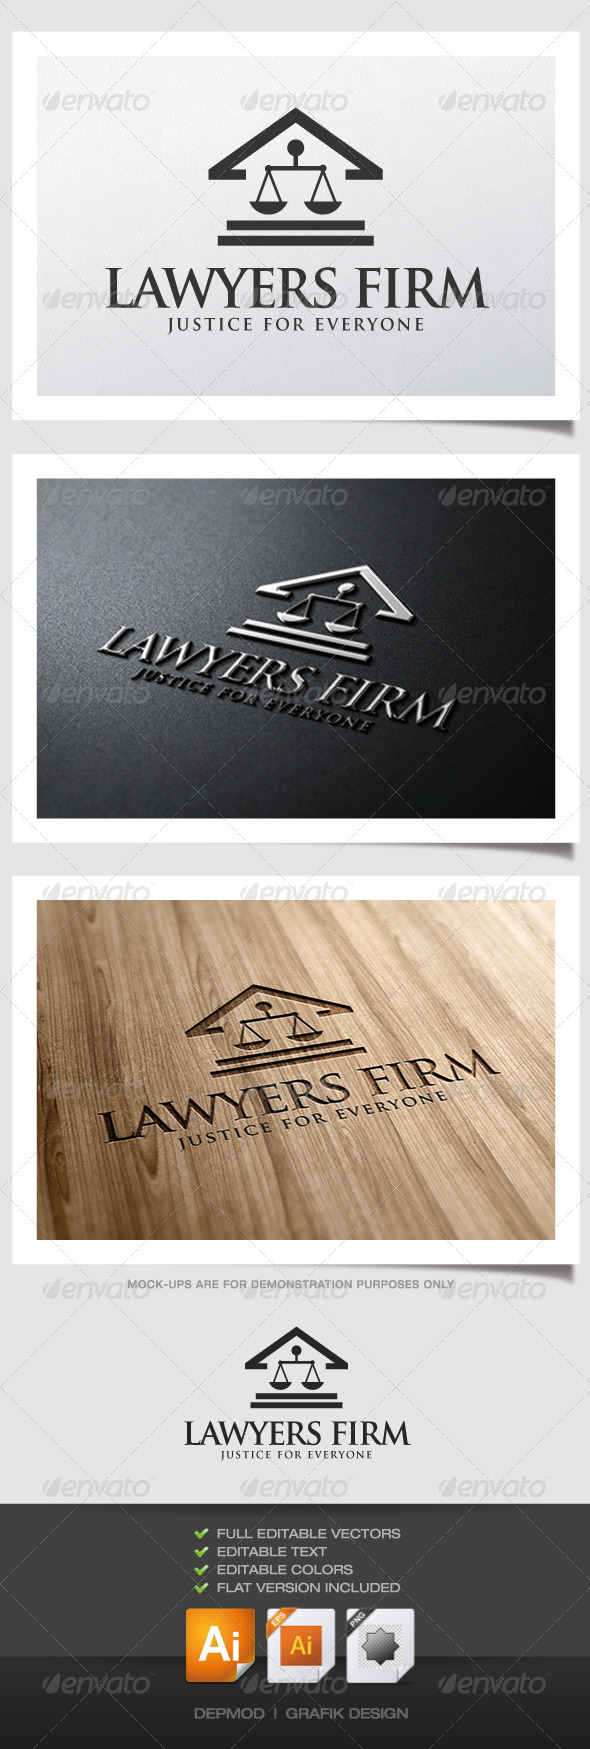 GraphicRiver Lawyers Firm Logo 5209975